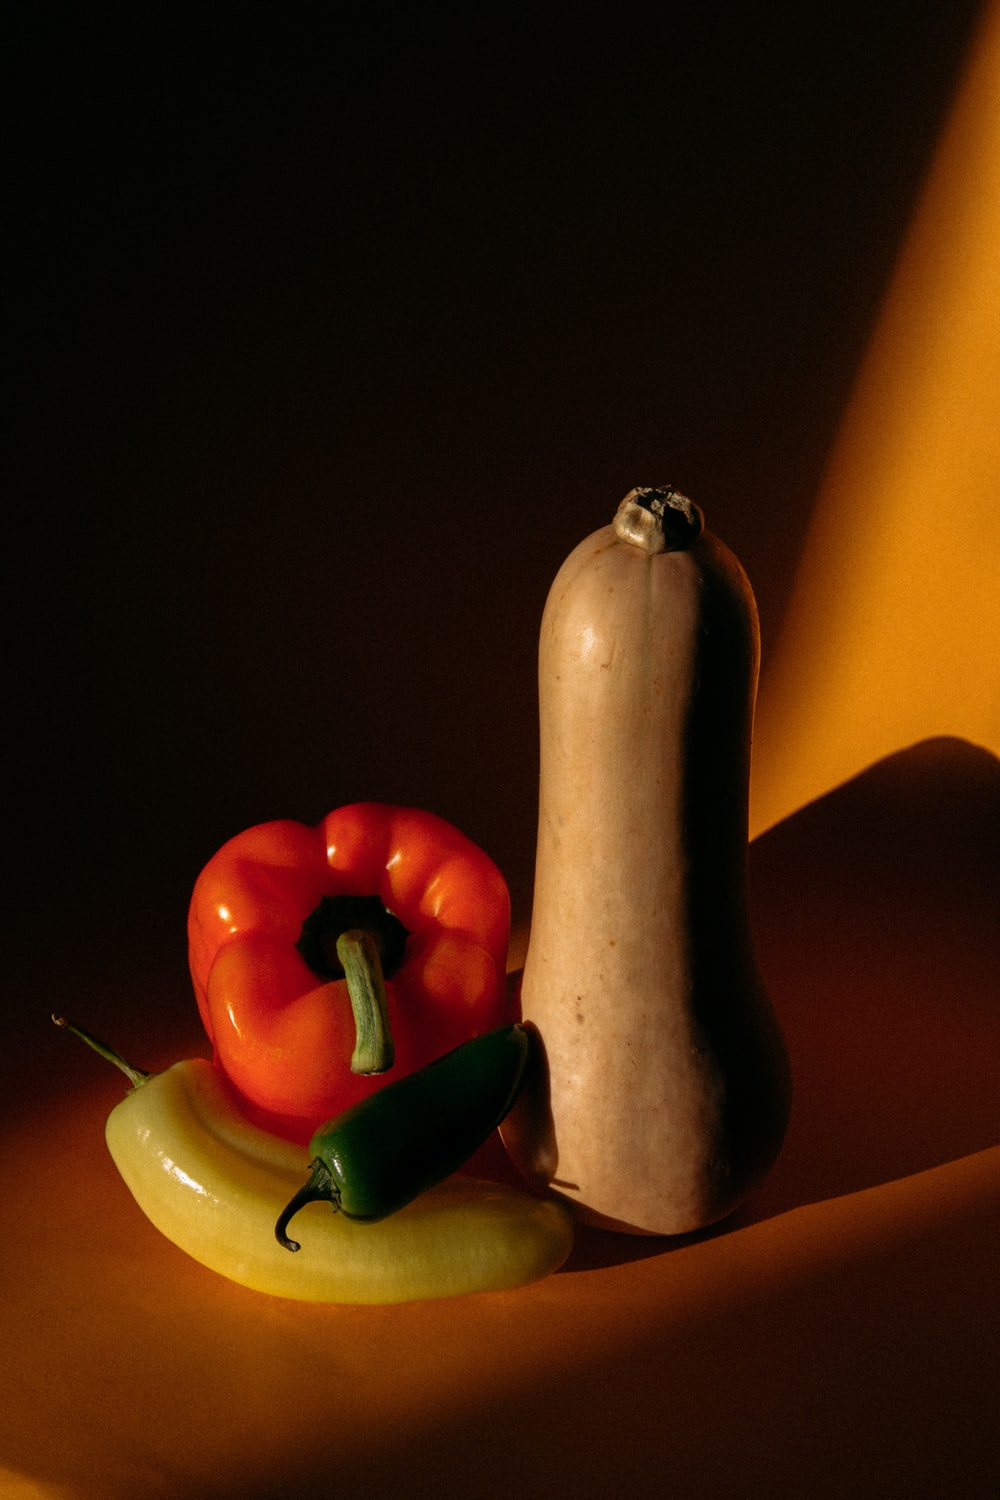 orange and red bell pepper